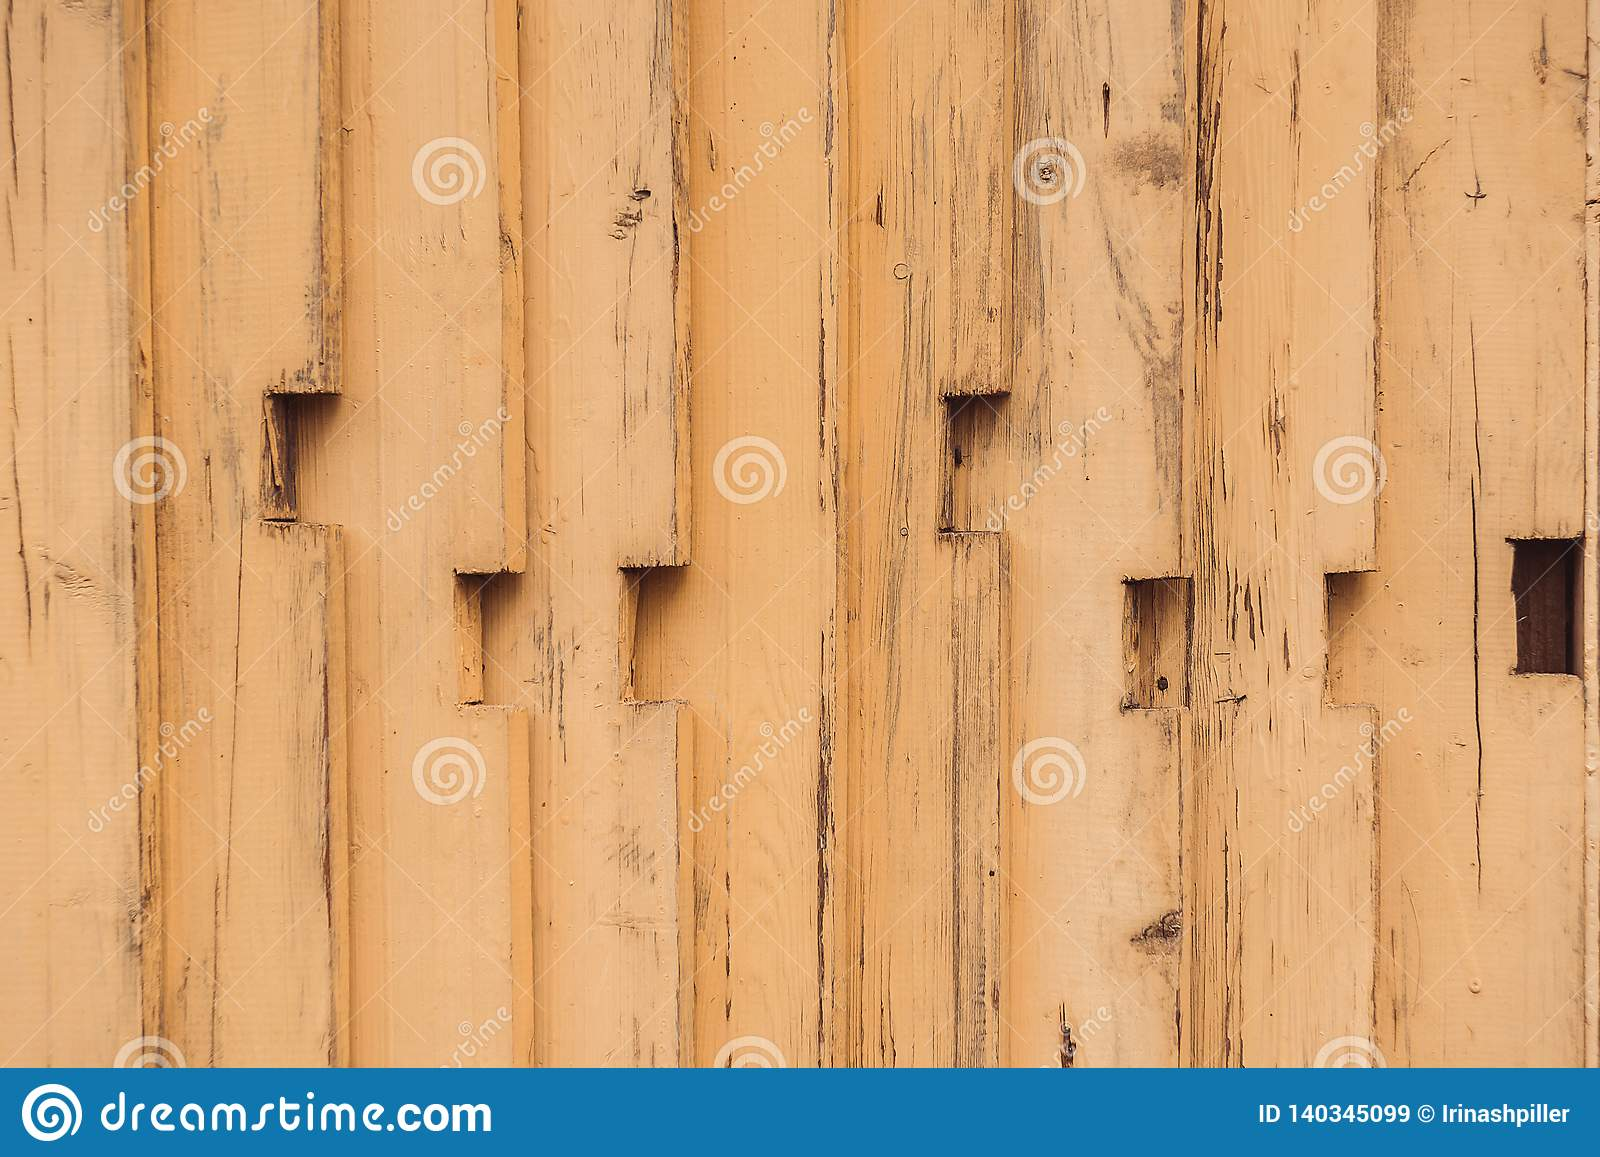 Yellow wooden old plank background. Old wooden texture